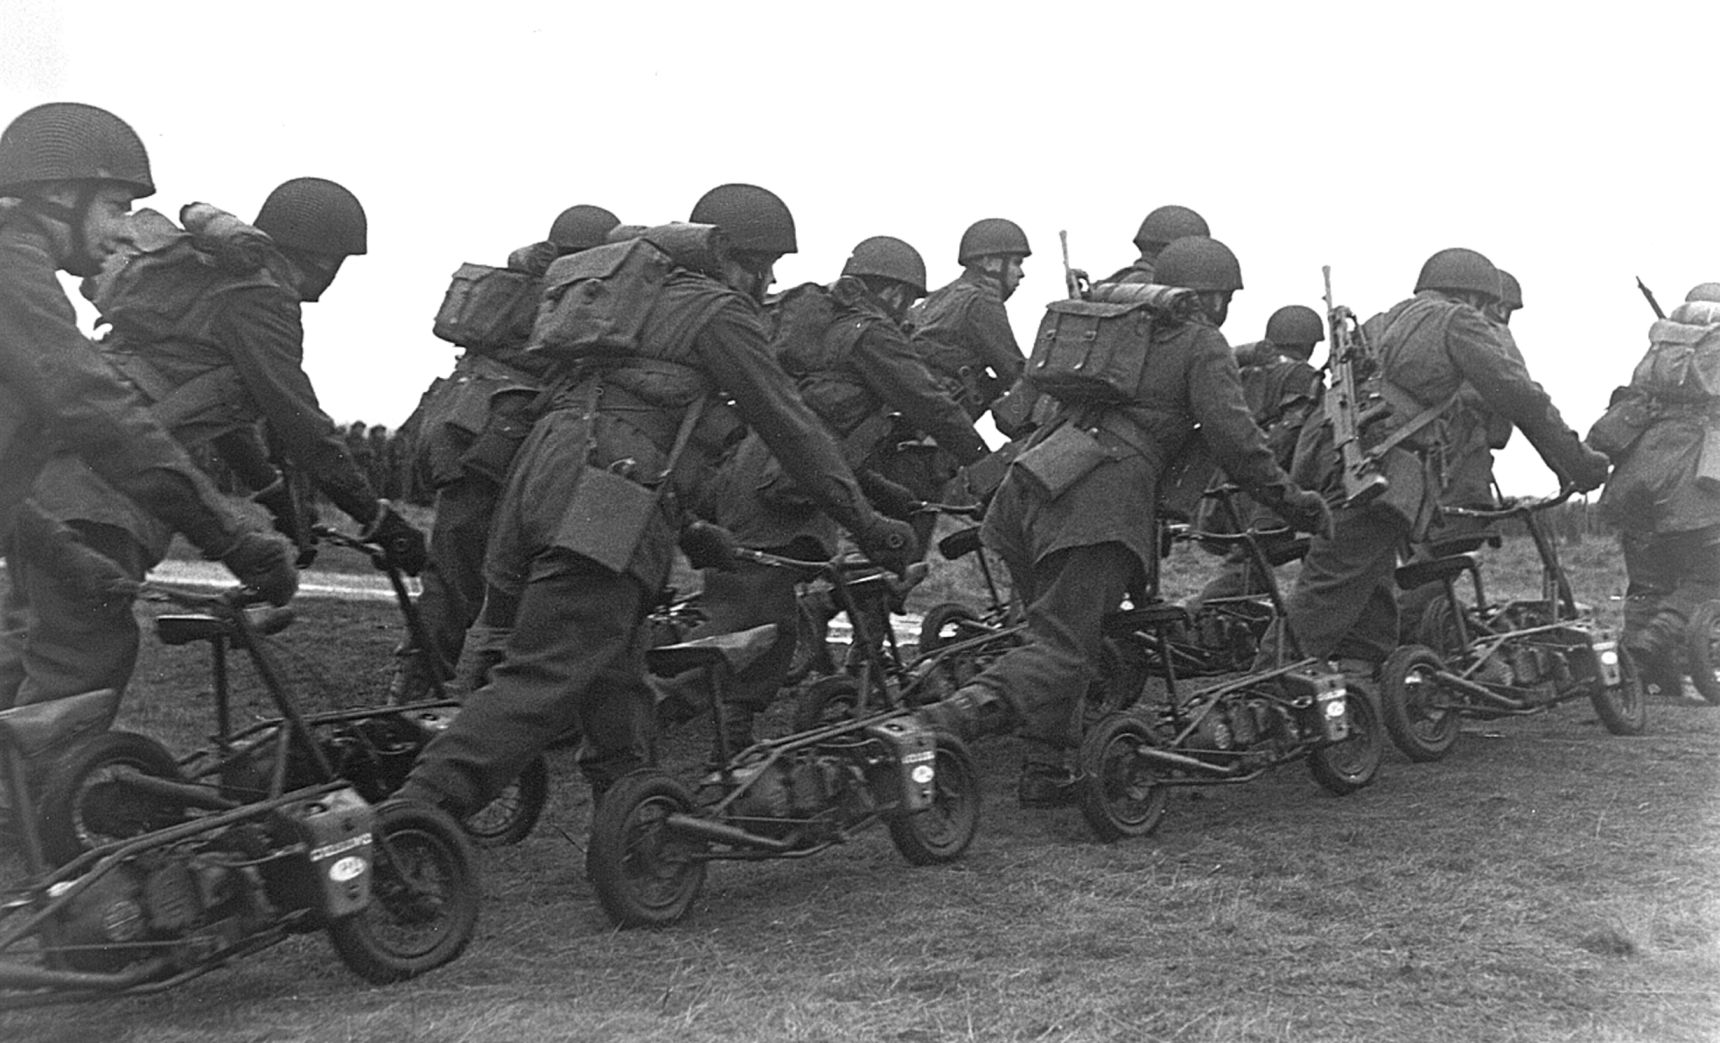 Polish Paratroopers with their Welbikes prior to starting them. (Picture courtesy histografy.pl).